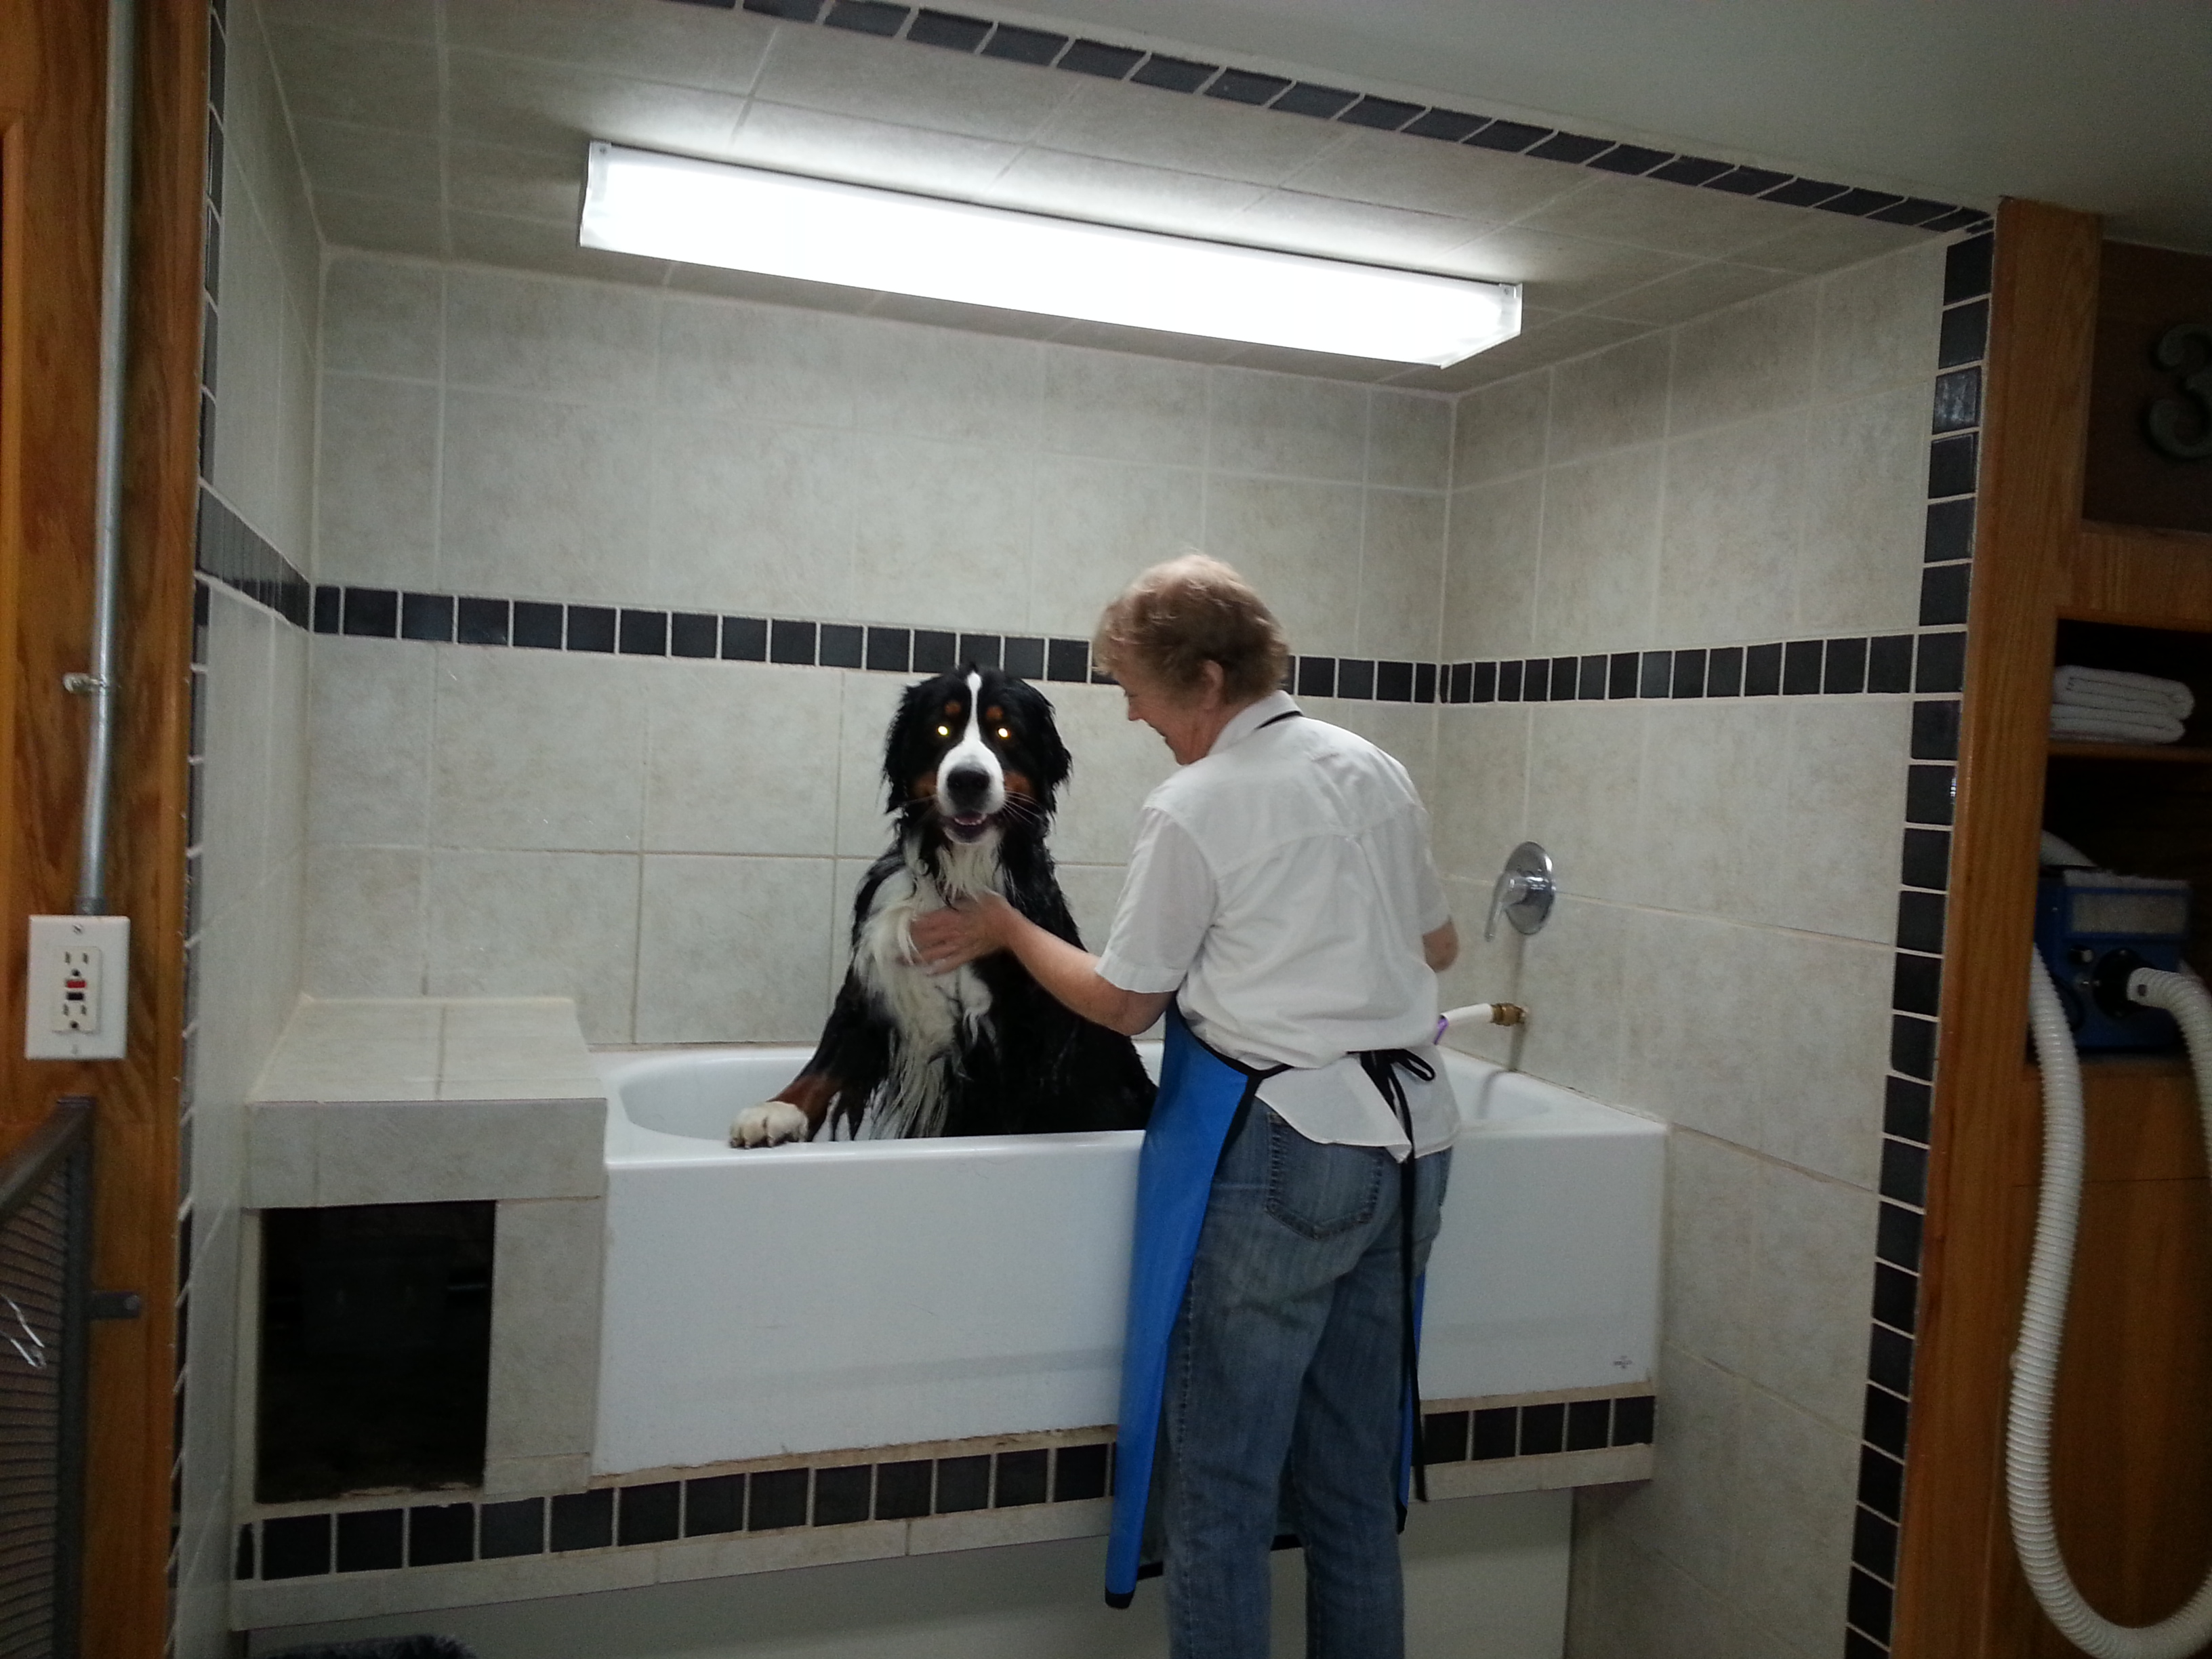 Dog groomer self serve dog bathing monroe wa self serve dog 20140328 131644 solutioingenieria Images